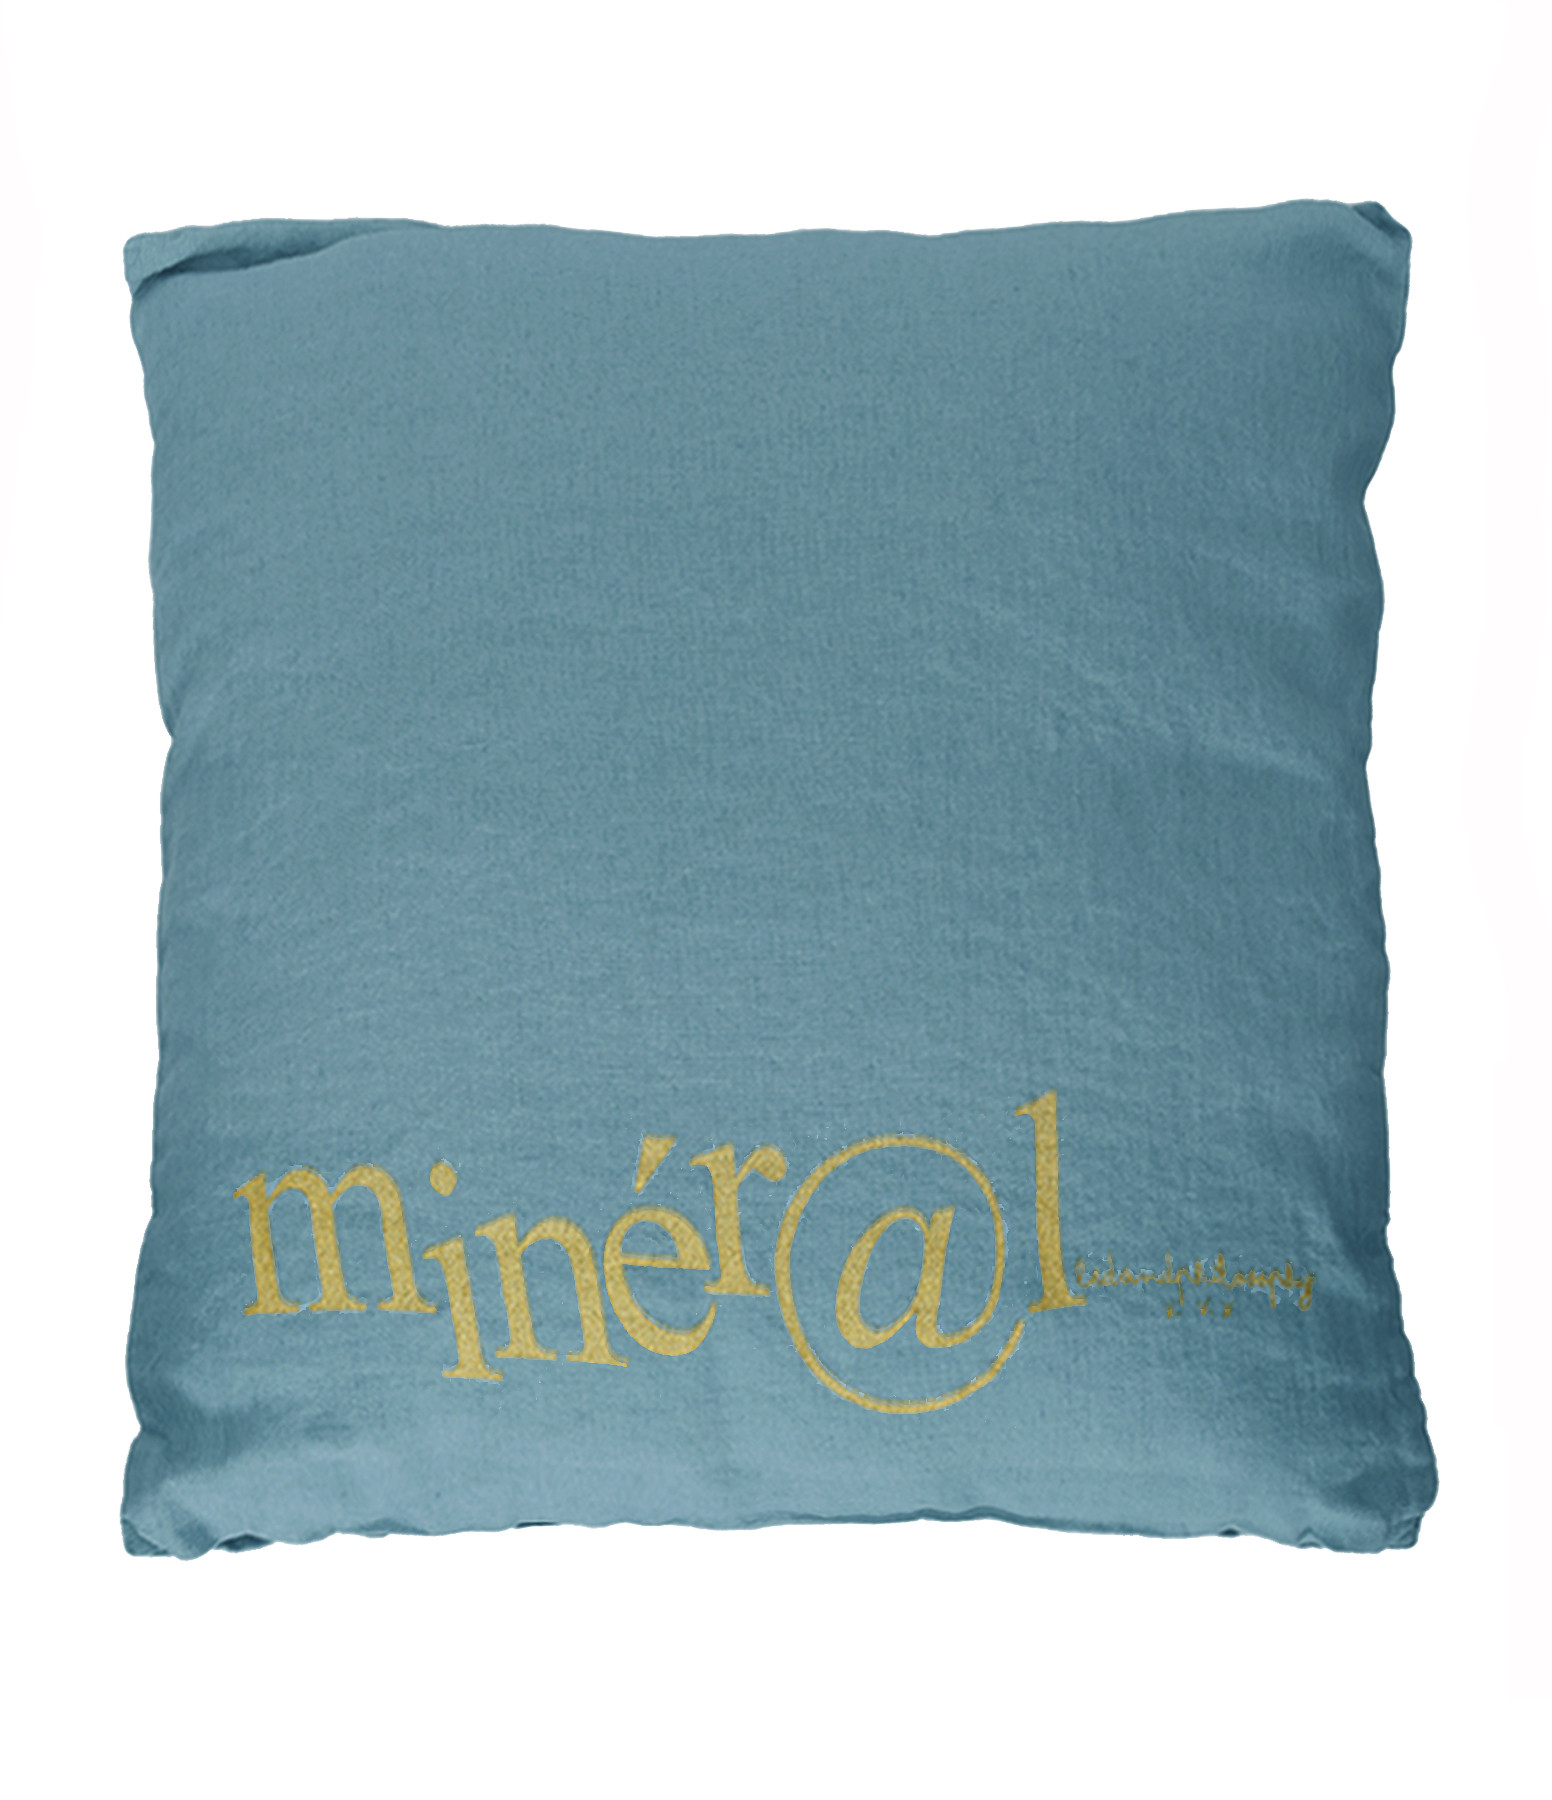 BED AND PHILOSOPHY - Coussin Molly Lin Mineral Print Doré